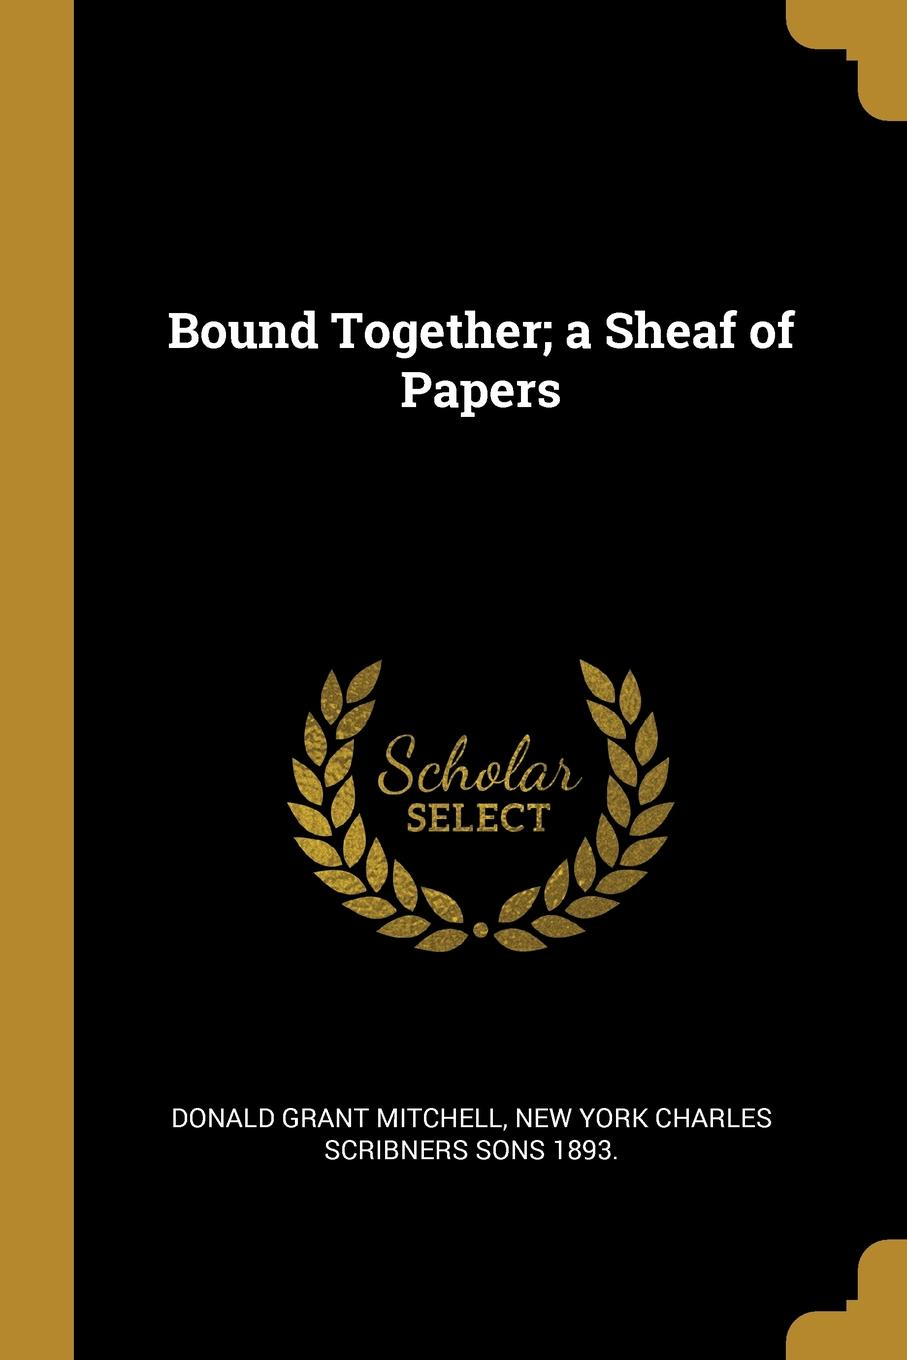 Donald Grant Mitchell Bound Together; a Sheaf of Papers